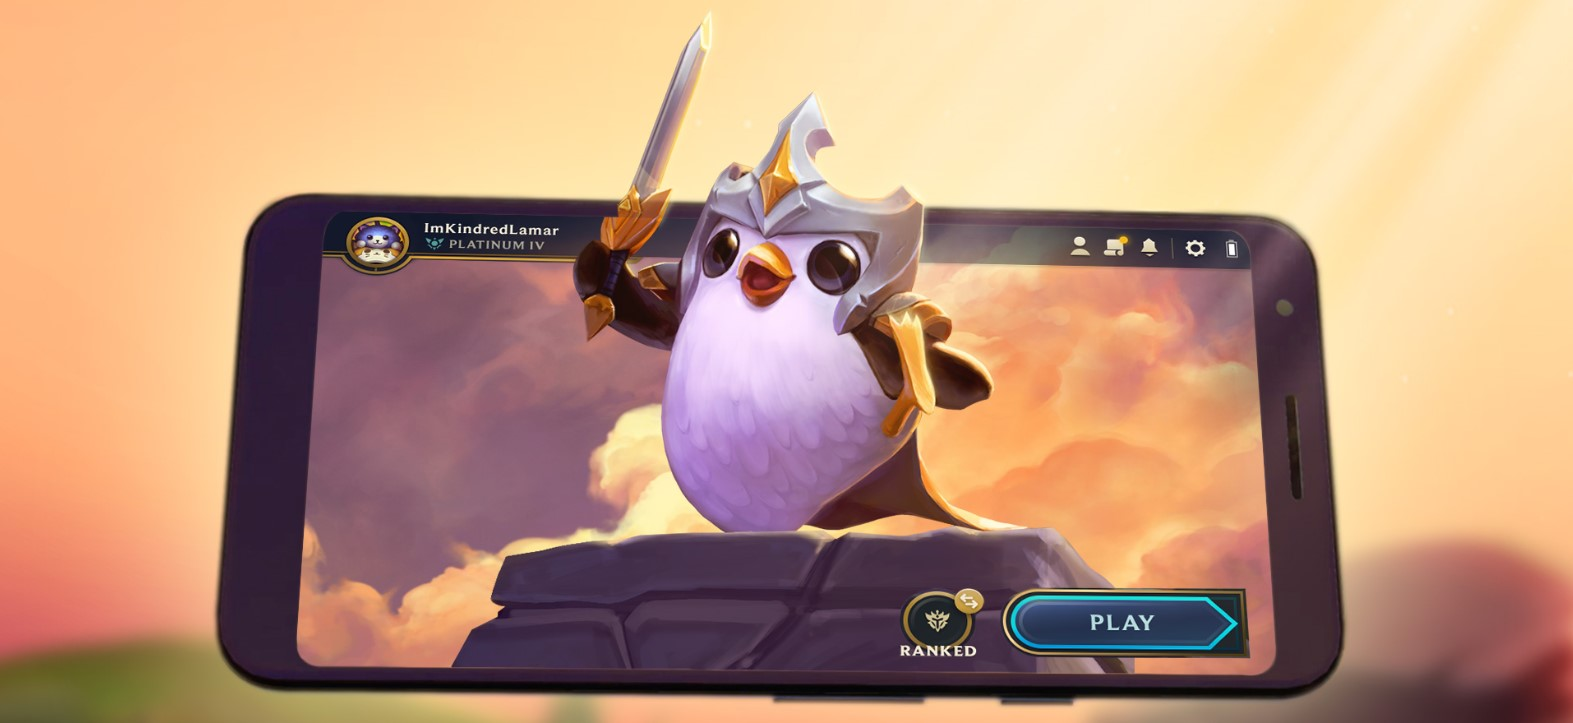 How to Play TFT Mobile (+Tips and Tricks)